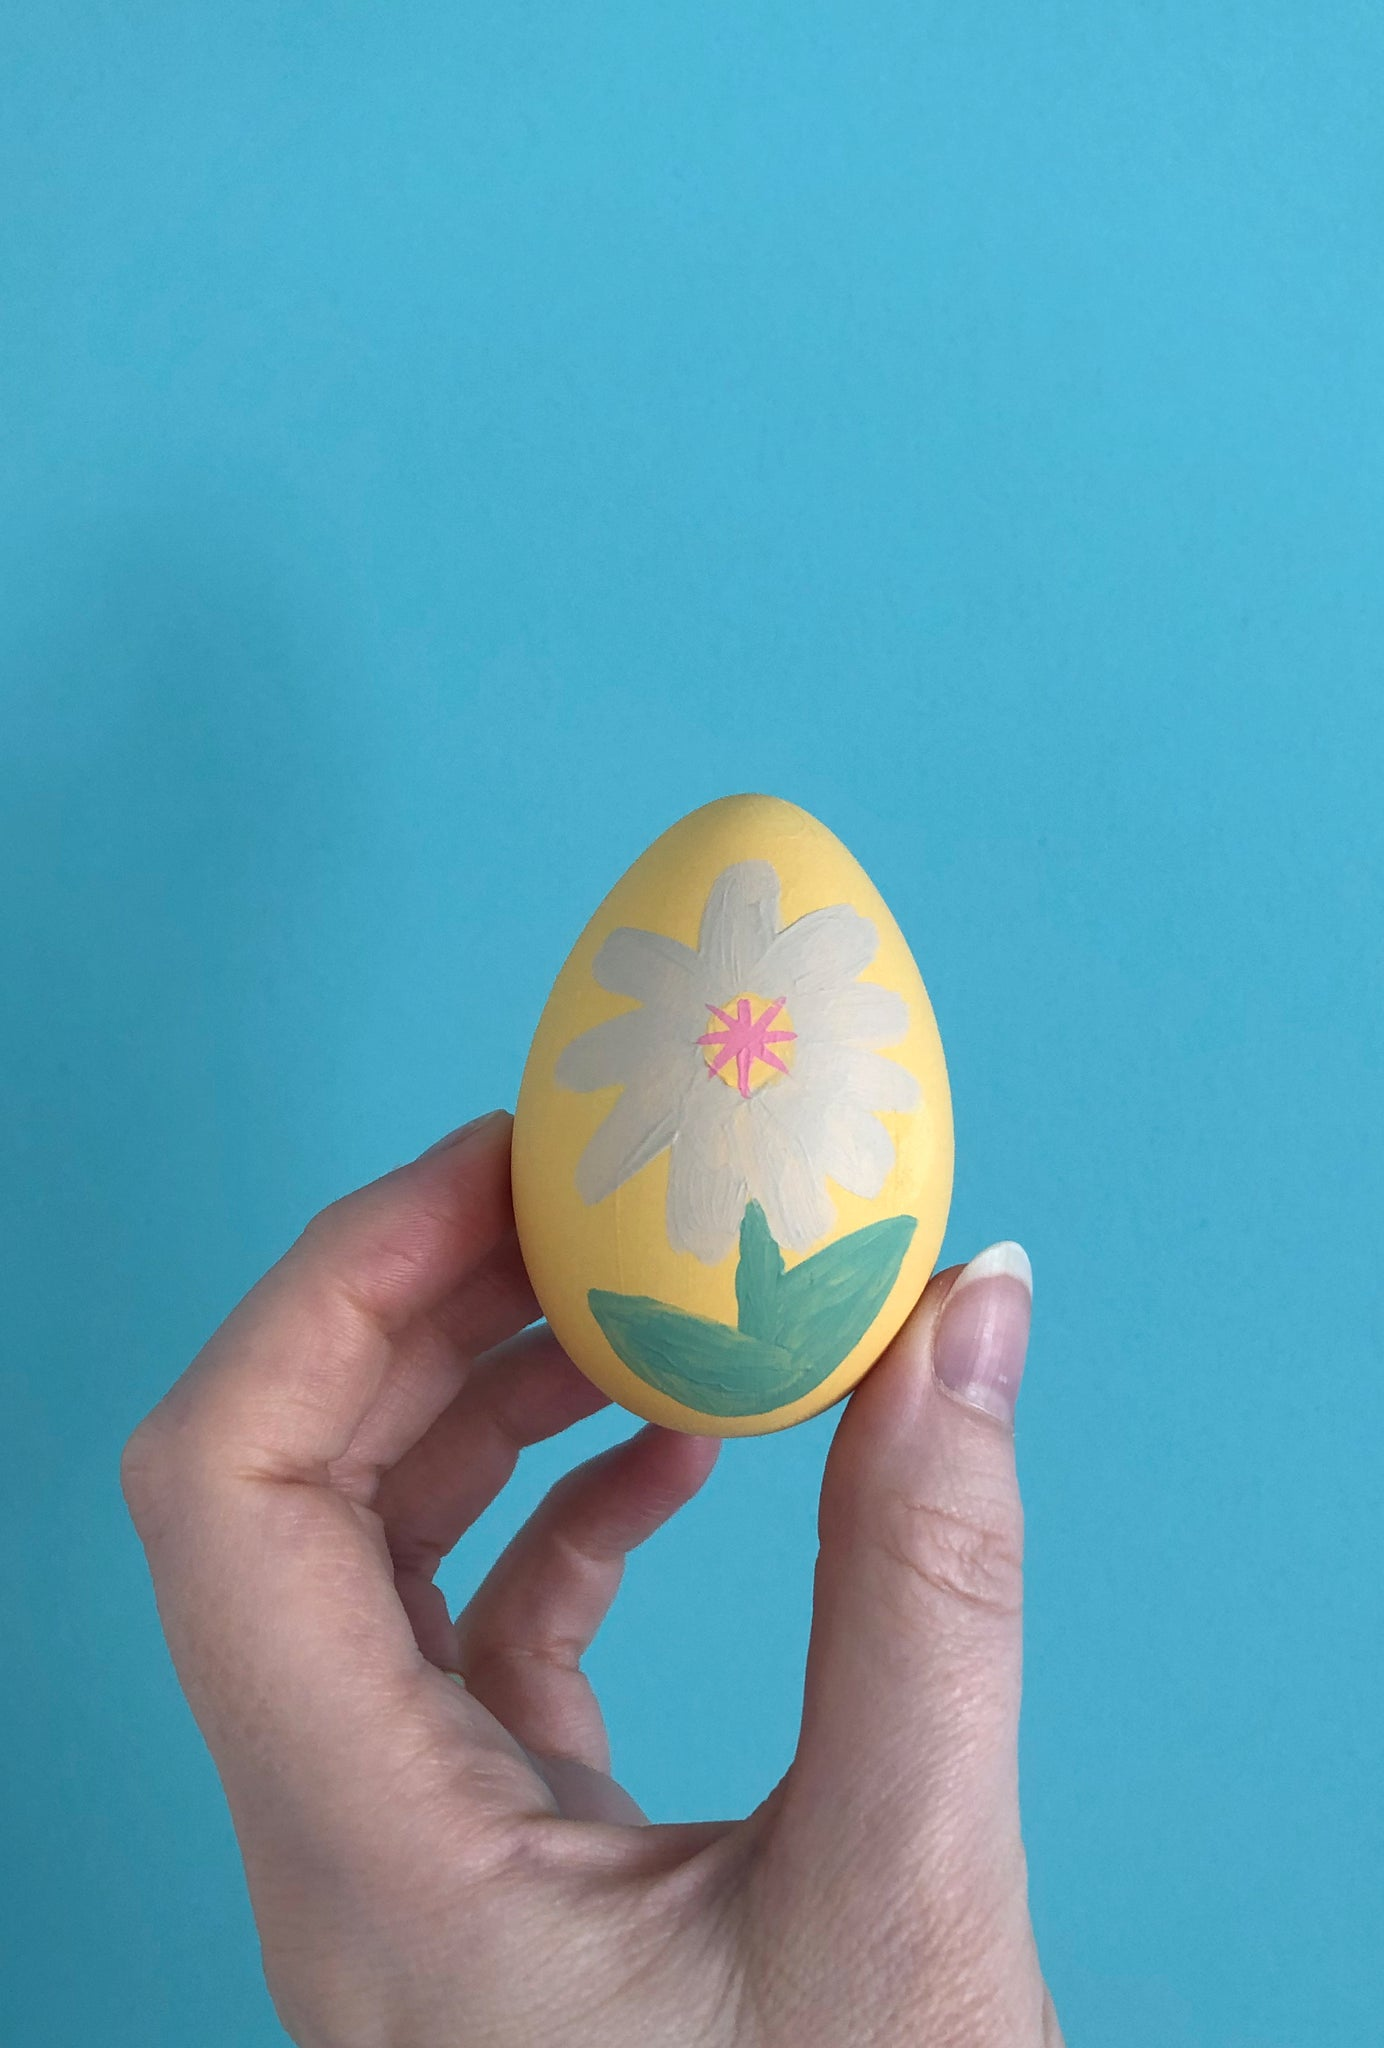 Finished painted daisy on Easter egg crafts for kids with blue background